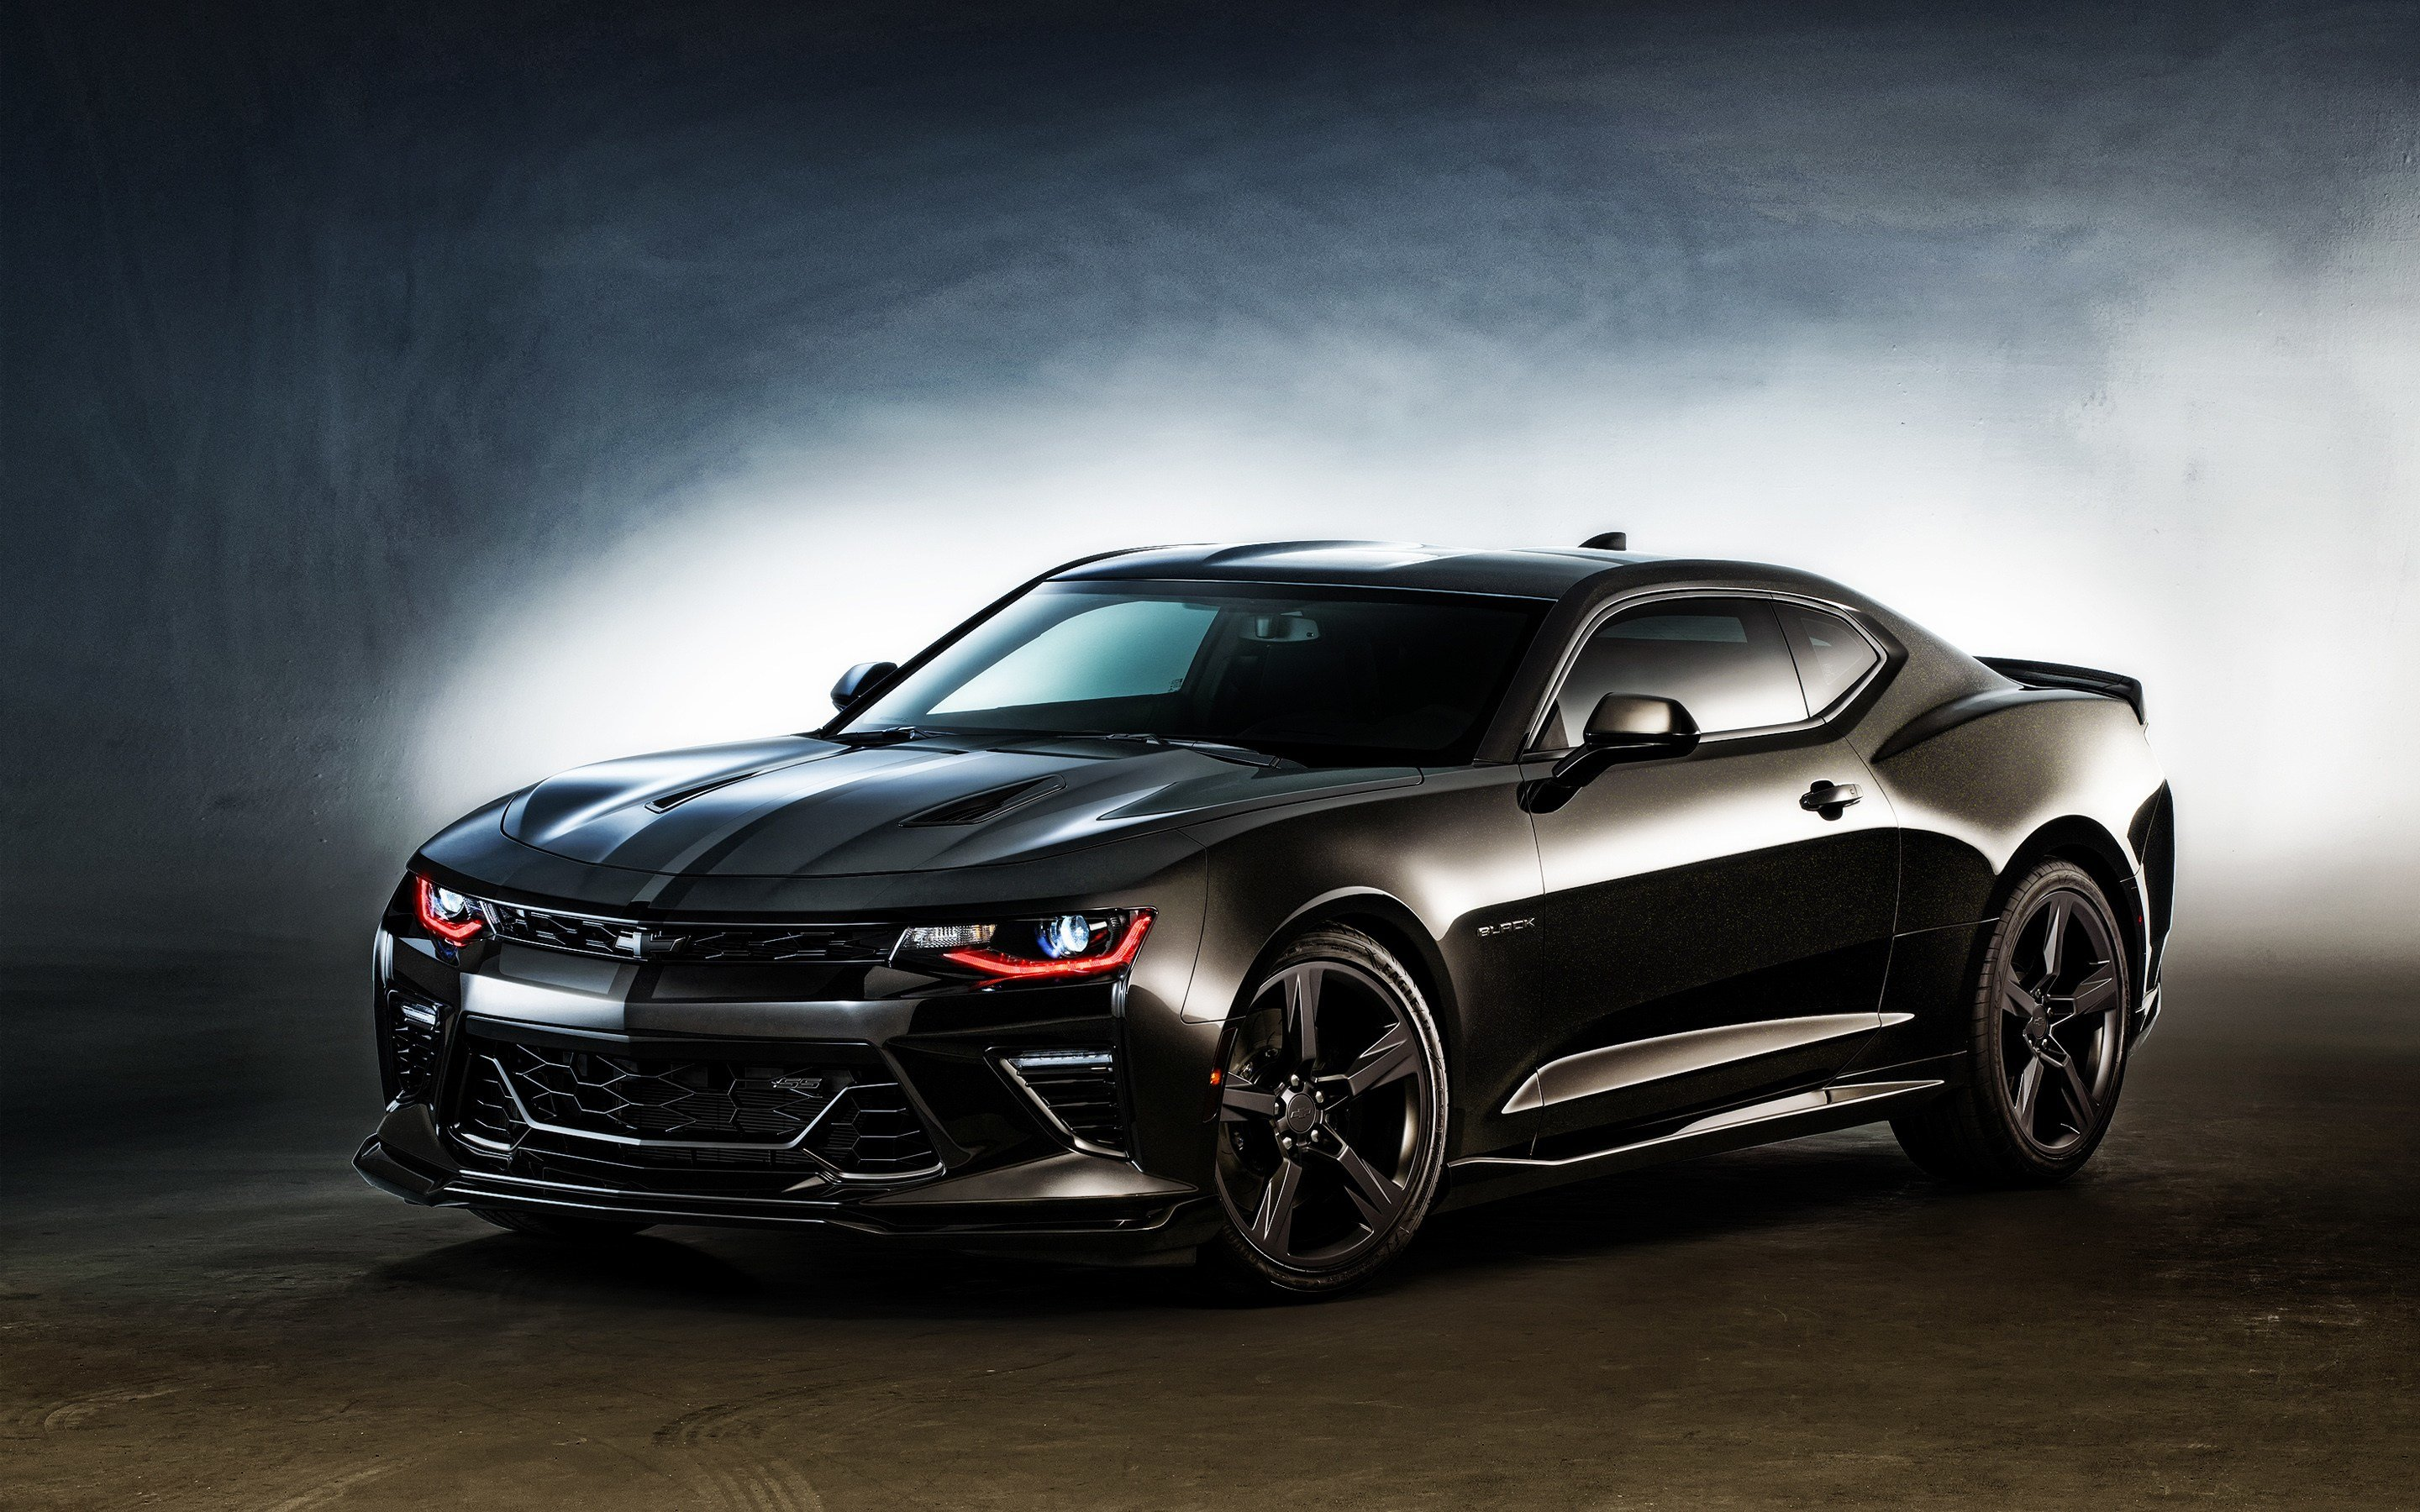 New 2016 Chevrolet Camaro Black Wallpaper Hd Car Wallpapers On This Month